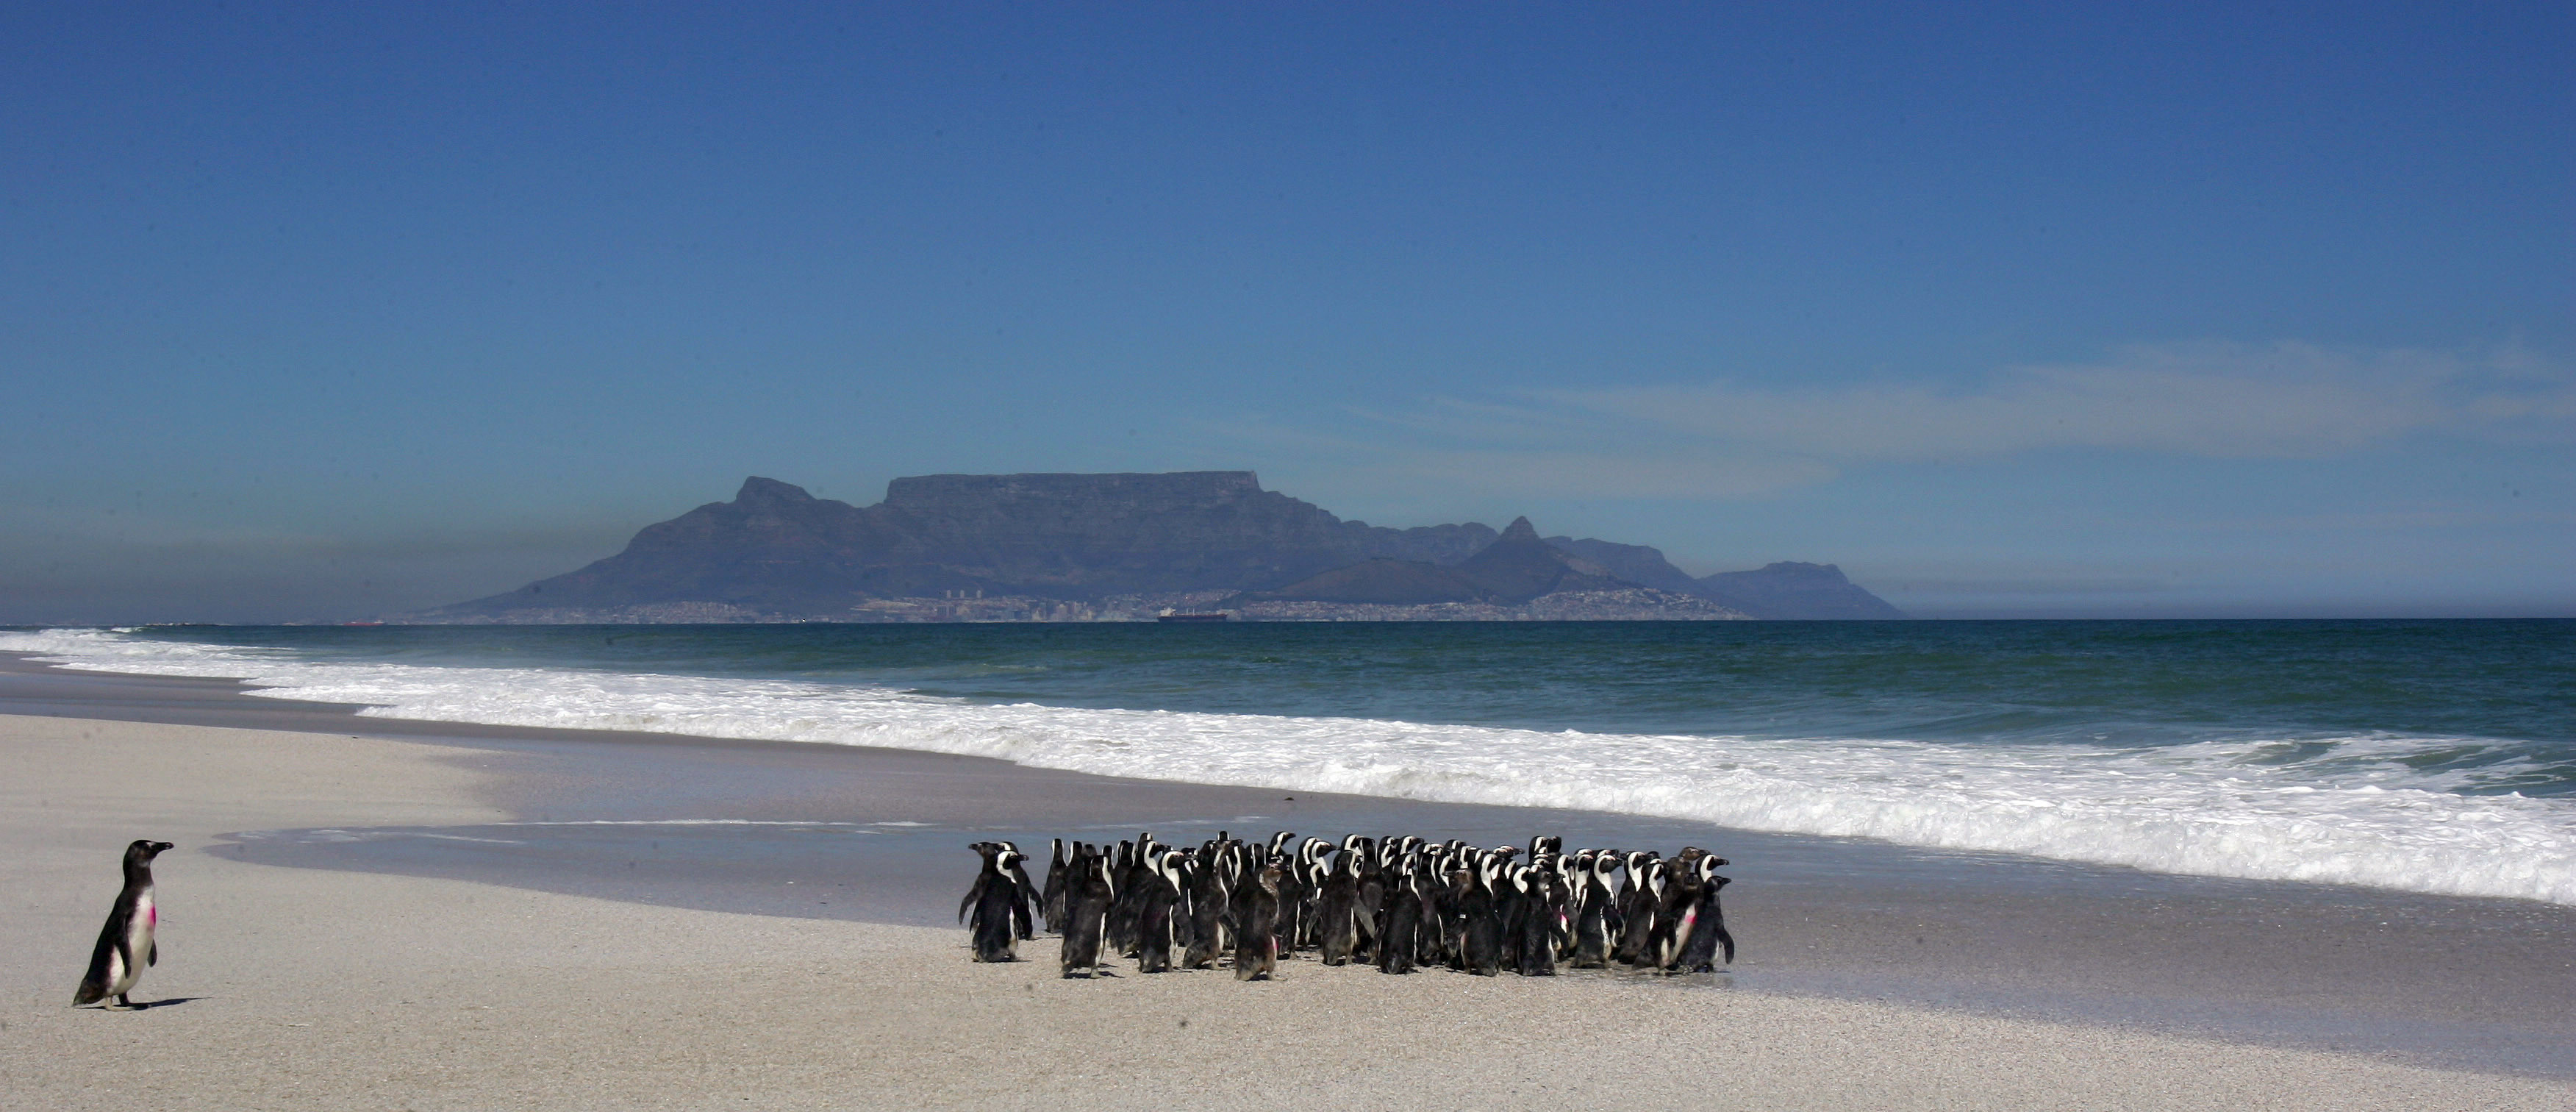 A group of about 100 African penguins are released into the sea near Cape Town September 16, 2005 after recovering at the SANCCOB (South African Foundation for the Conservation of Coastal Birds) rehabilitation centre. About 400 of these endangered birds were treated by volunteers at the centre after being affected by an oil slick. Conservation officials suspect the oil spill may have been the result of vessels illegally flushing bilges off the South African coast. Pictures of the Year 2005 REUTERS/Mike Hutchings  MH/JJ - RP6DRNAWEPAB